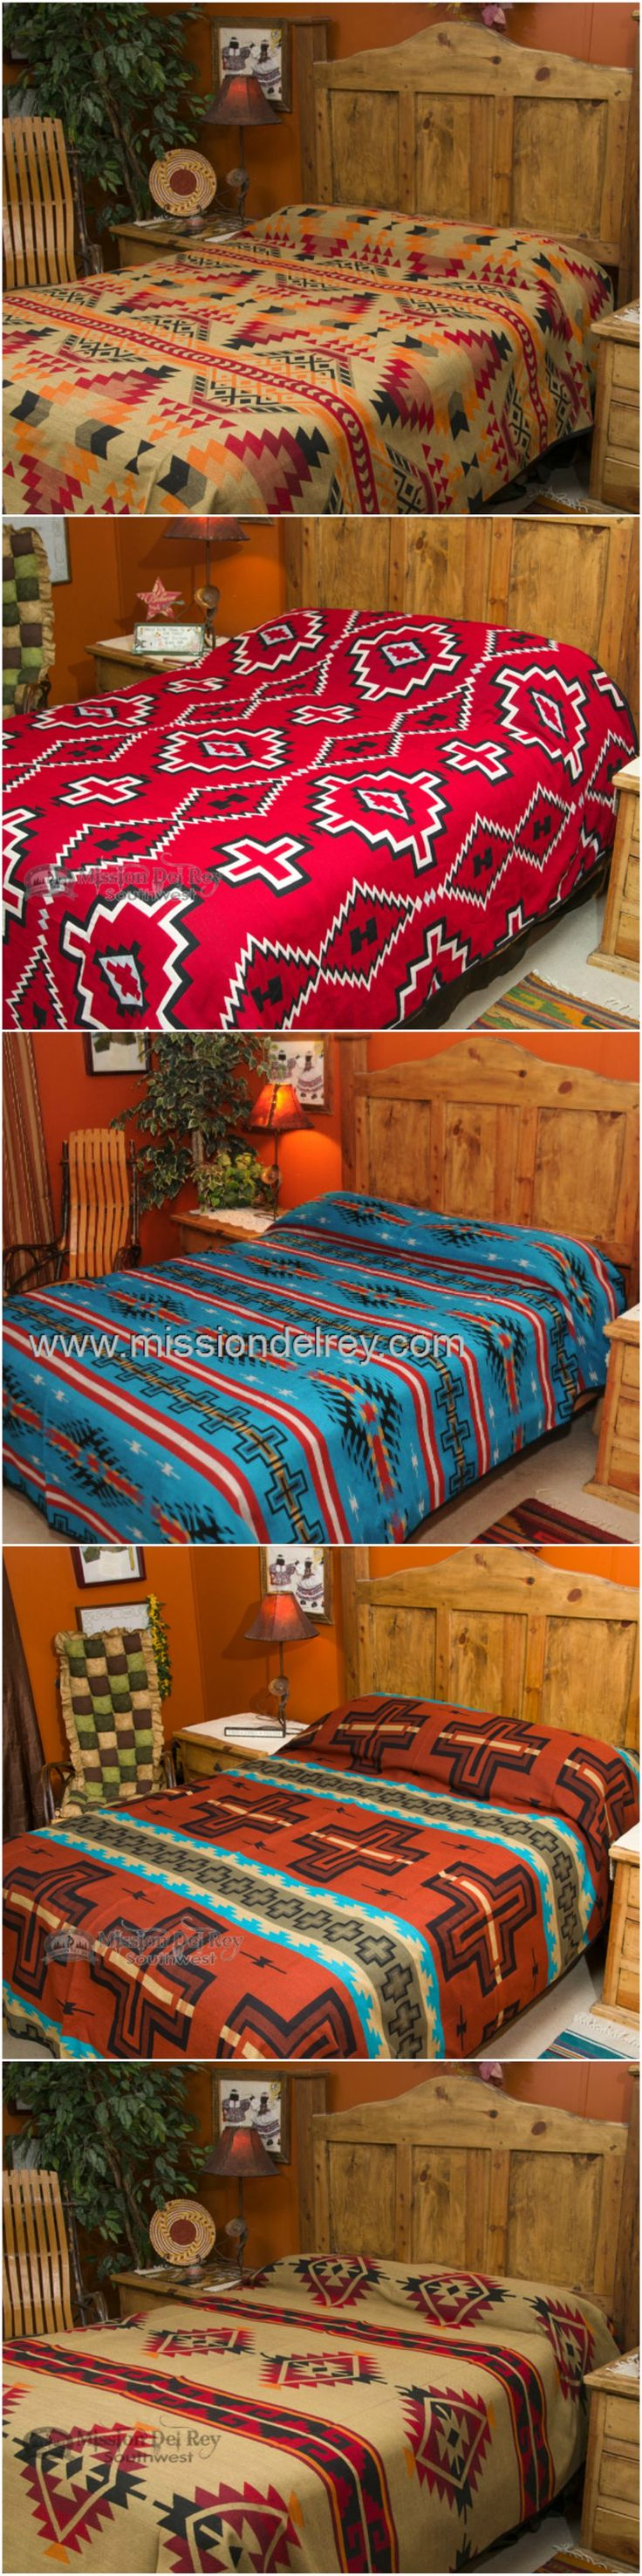 If you are looking for an easy way to incorporate southwest design into your home decor, check out our great collection of southwestern bedspreads.  Instantly change the look of any room, and give your home designer style with the beautiful colors and designs of the Southwest.  Check out our other  southwestern, rustic and western bedspreads at http://www.missiondelrey.com/southwestern-bedspreads/